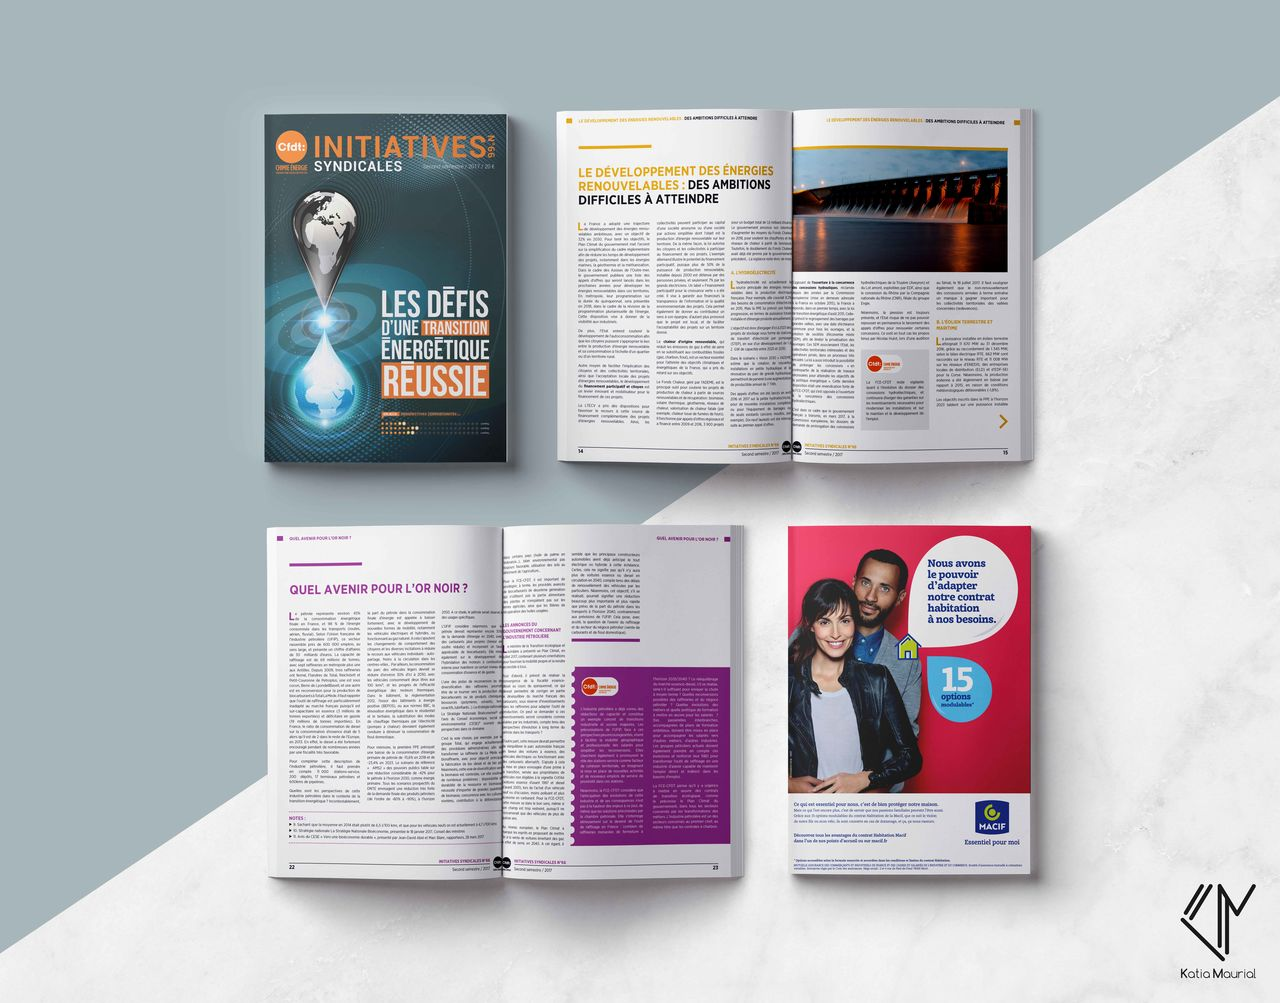 Publication Initiatives Syndicales